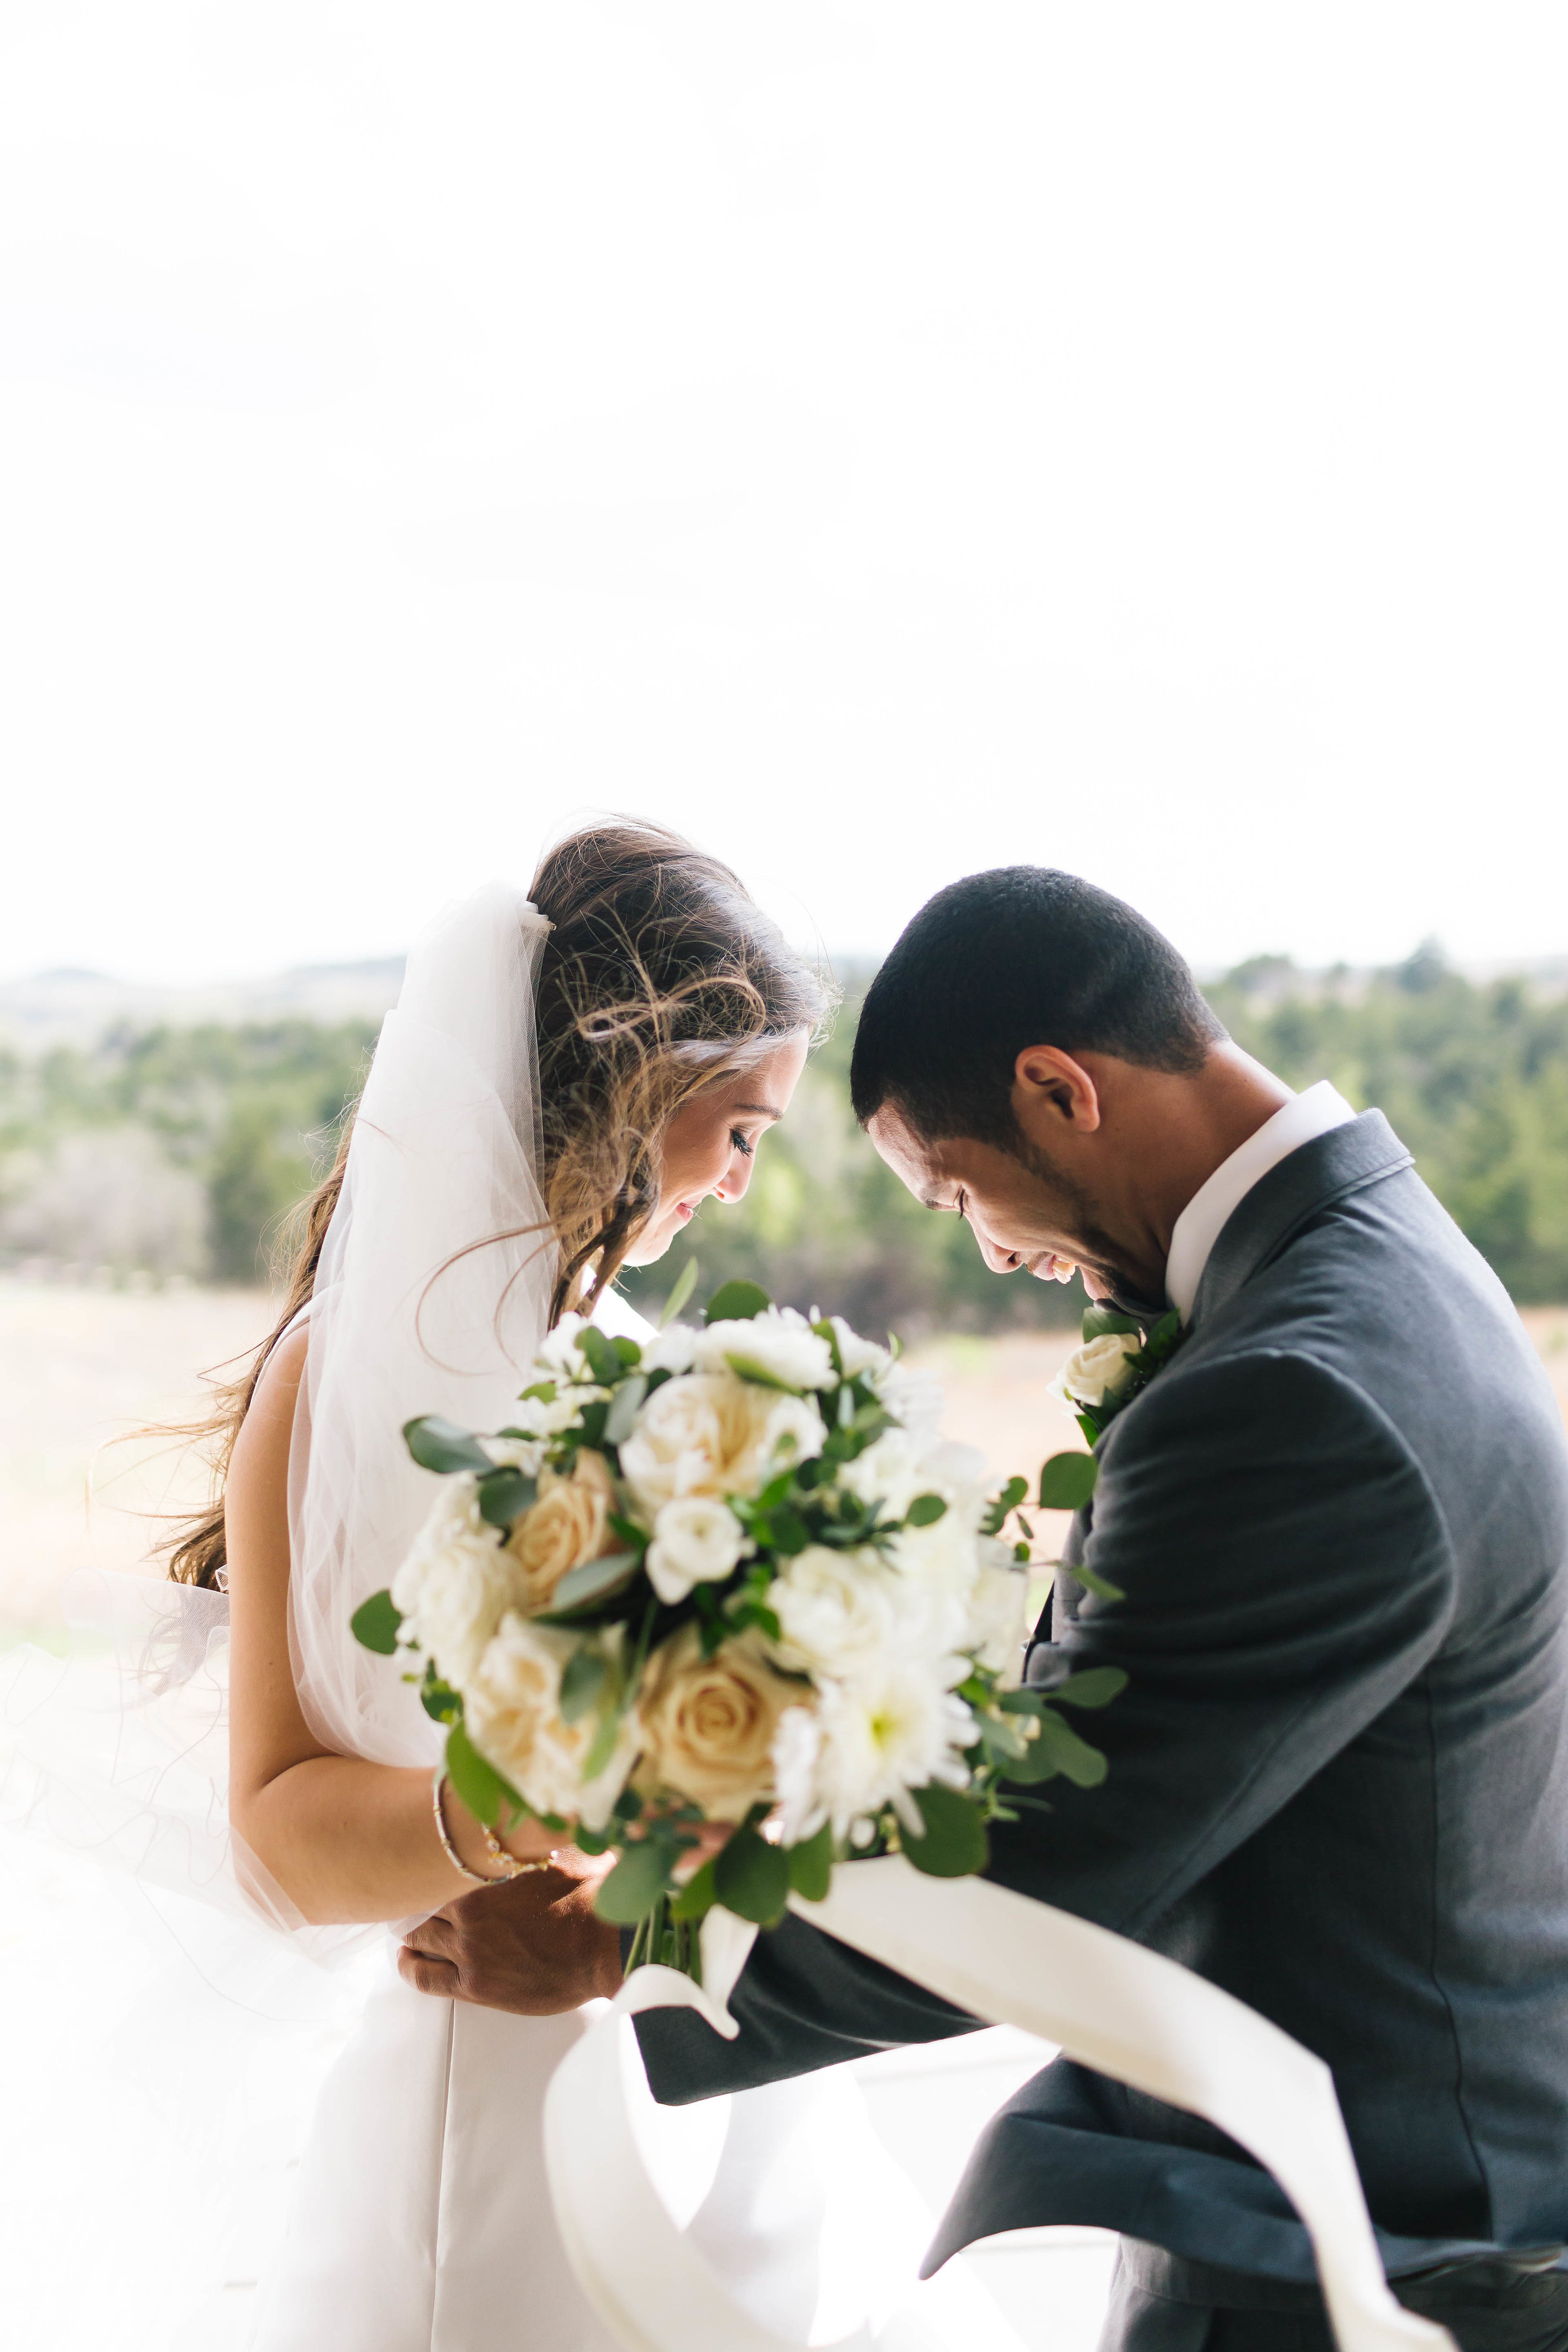 Create a Wedding Website That Shares Your Info—and Drums Up Excitement for the Big Day